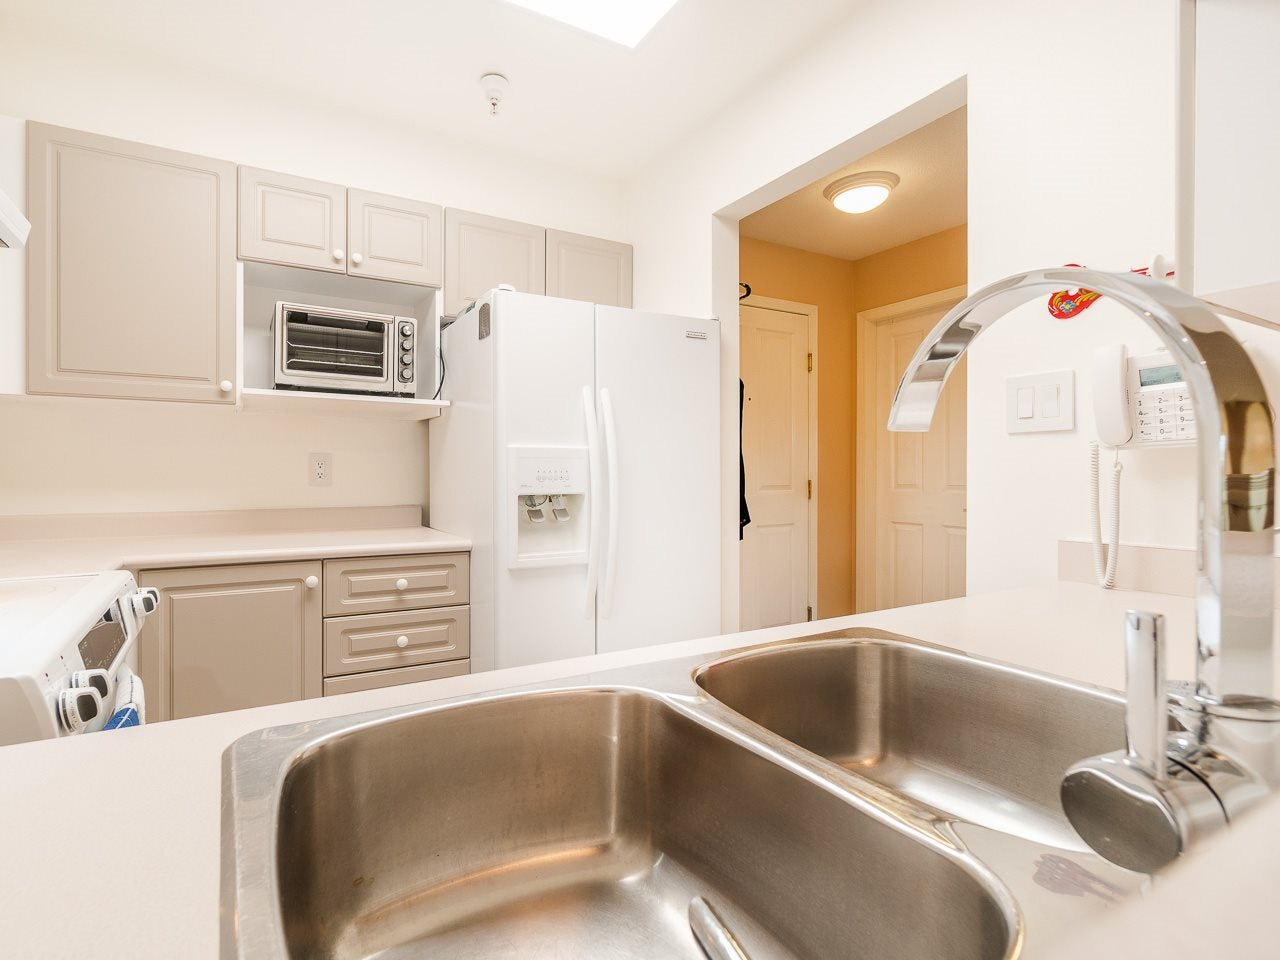 306 2105 W 42ND AVENUE - Kerrisdale Apartment/Condo for sale, 1 Bedroom (R2511504) - #15